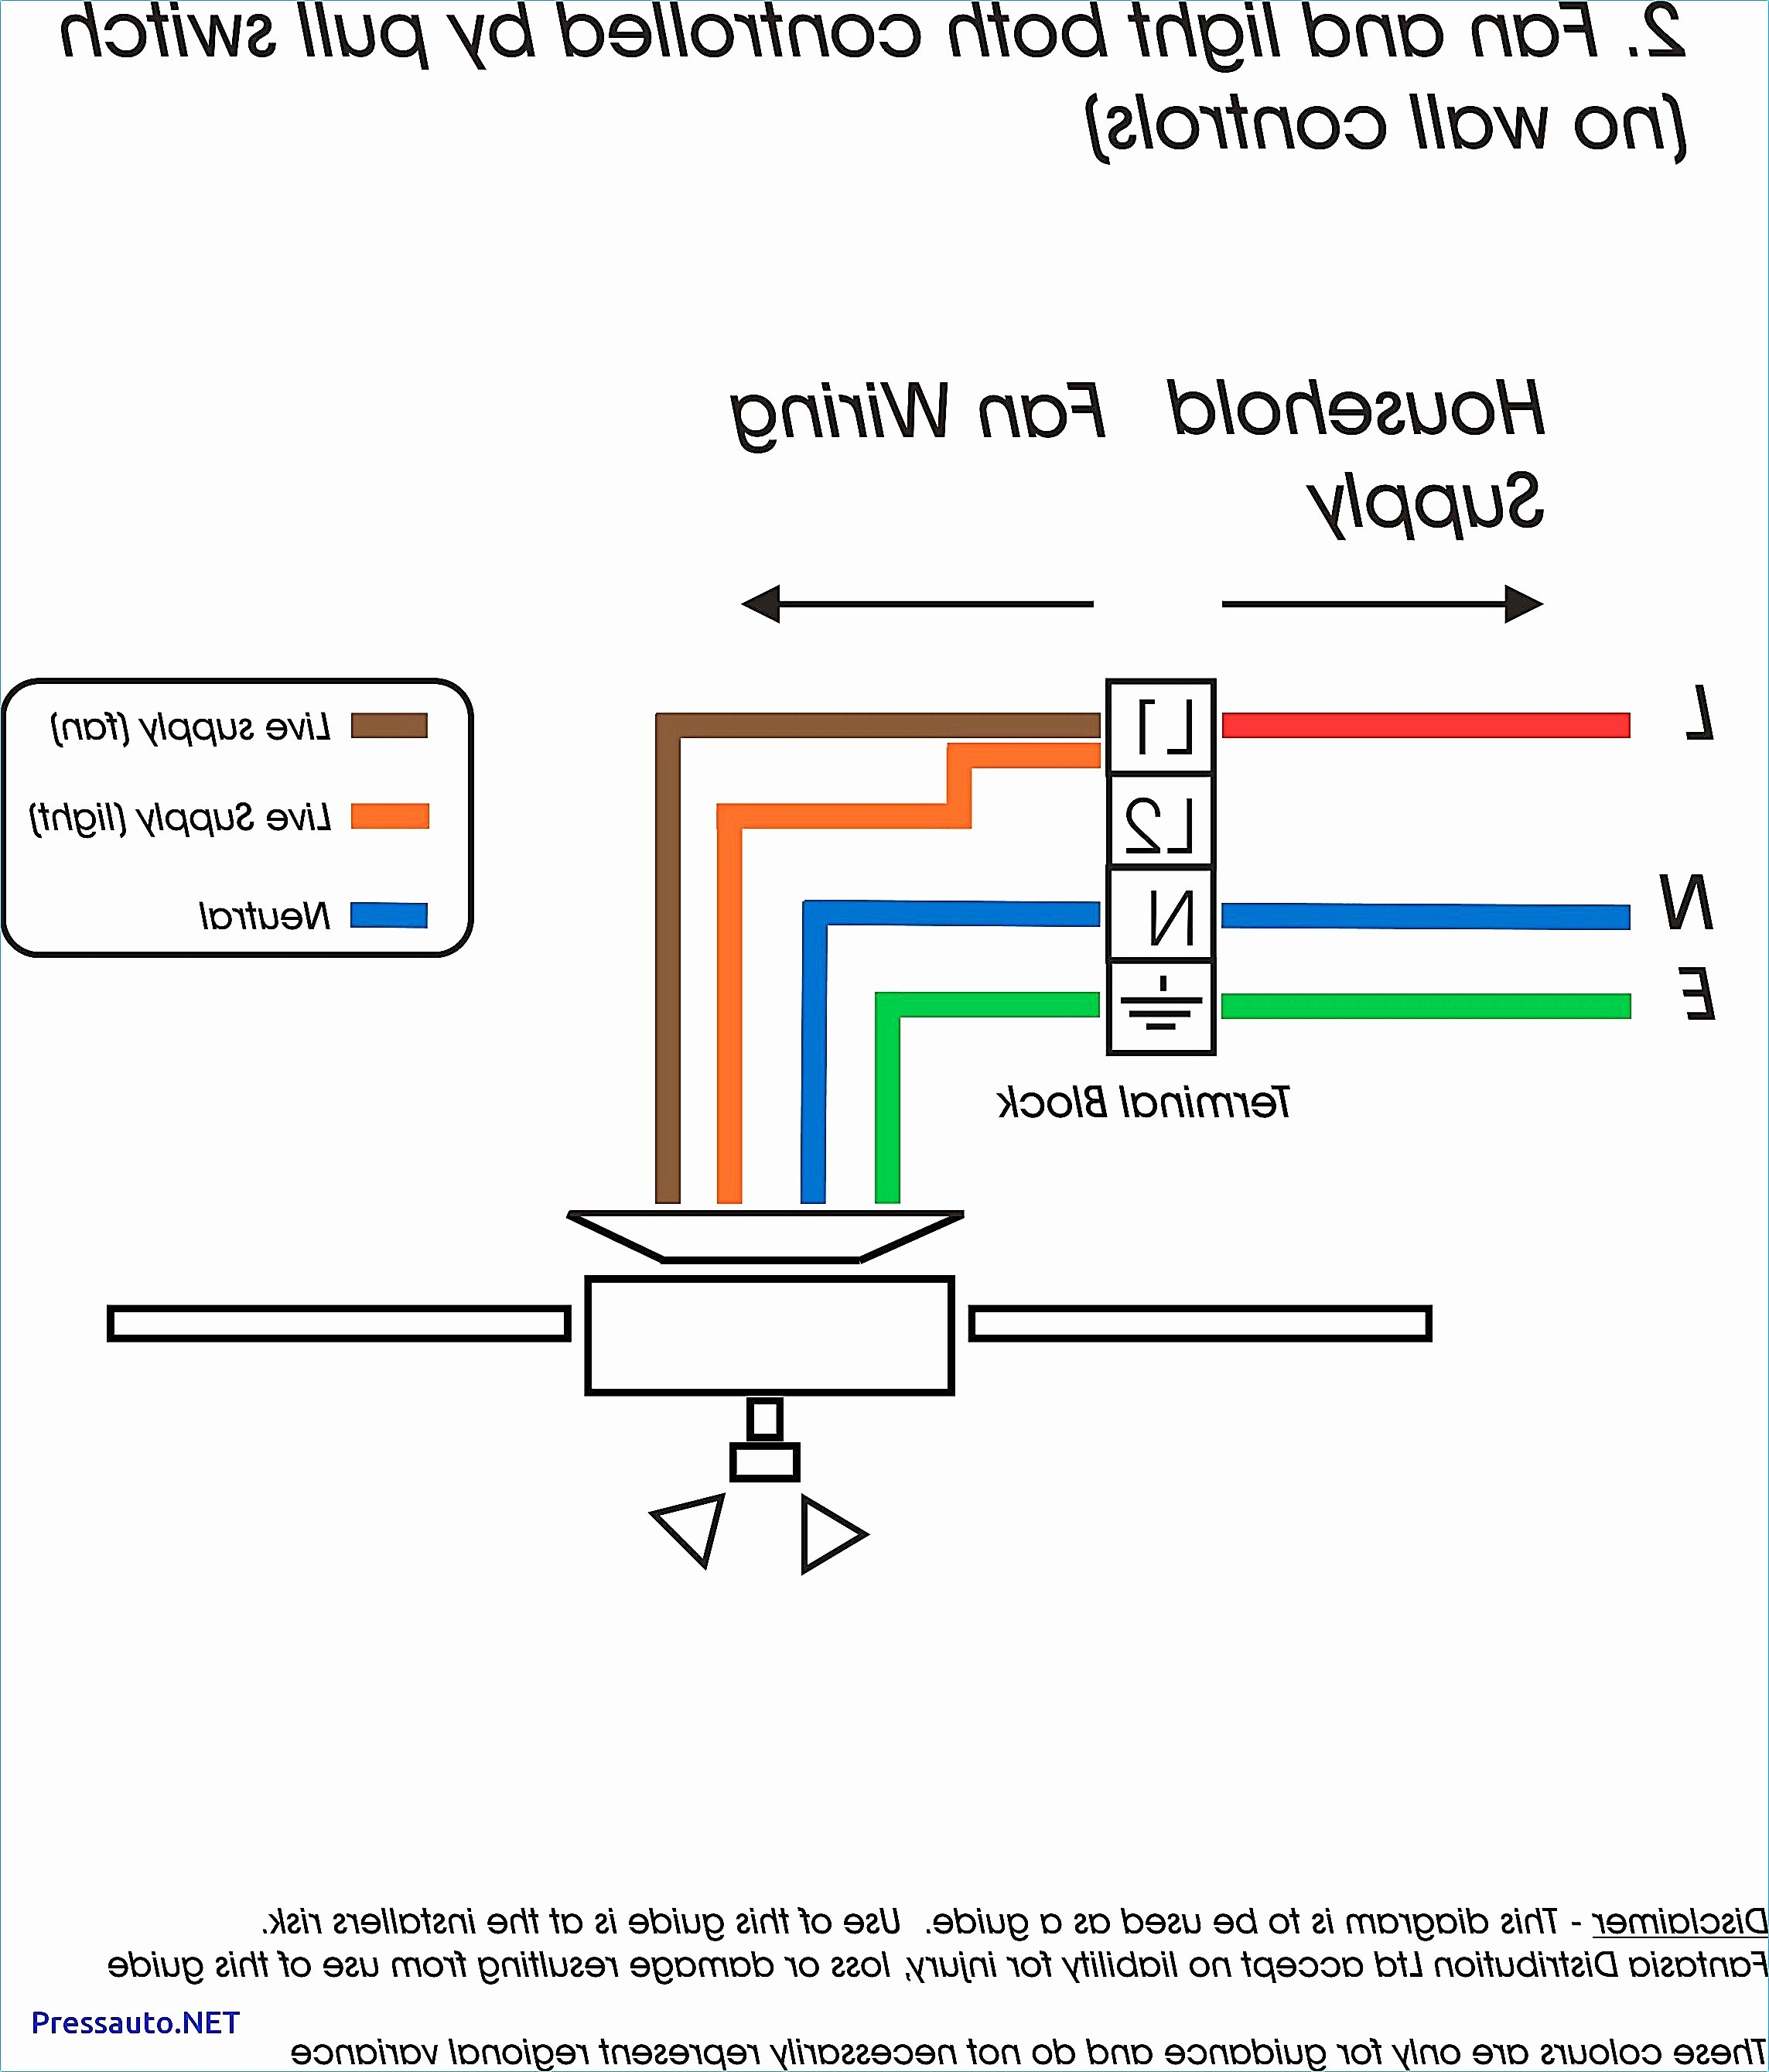 pilz pnoz x1 wiring diagram Download-double light switch wiring diagram 6-c